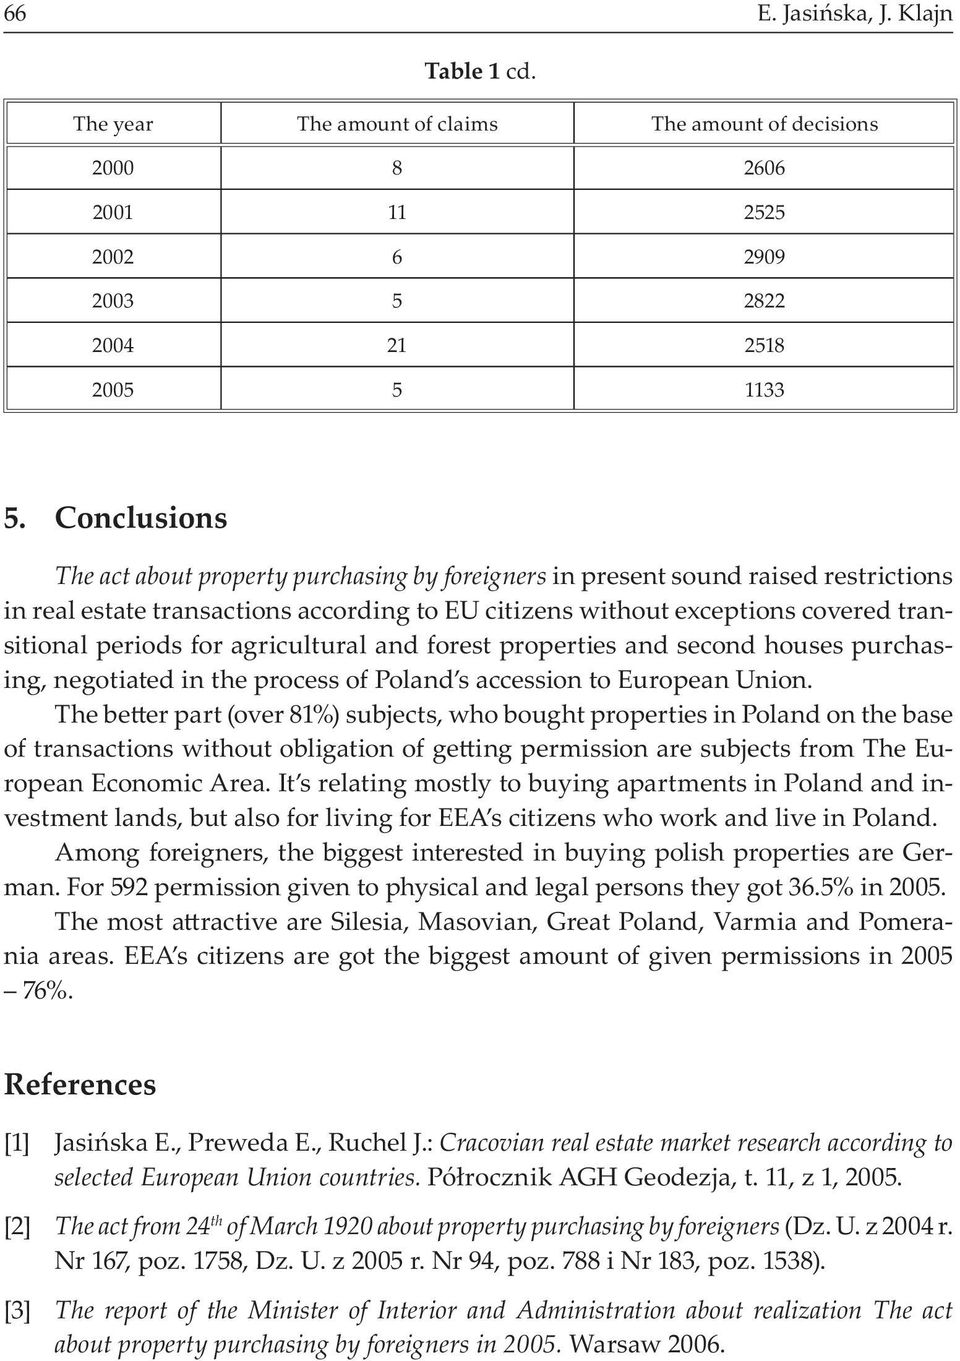 For Agricultural And Forest Properties Second Houses Purchasing Negotiated In The Process Of Poland